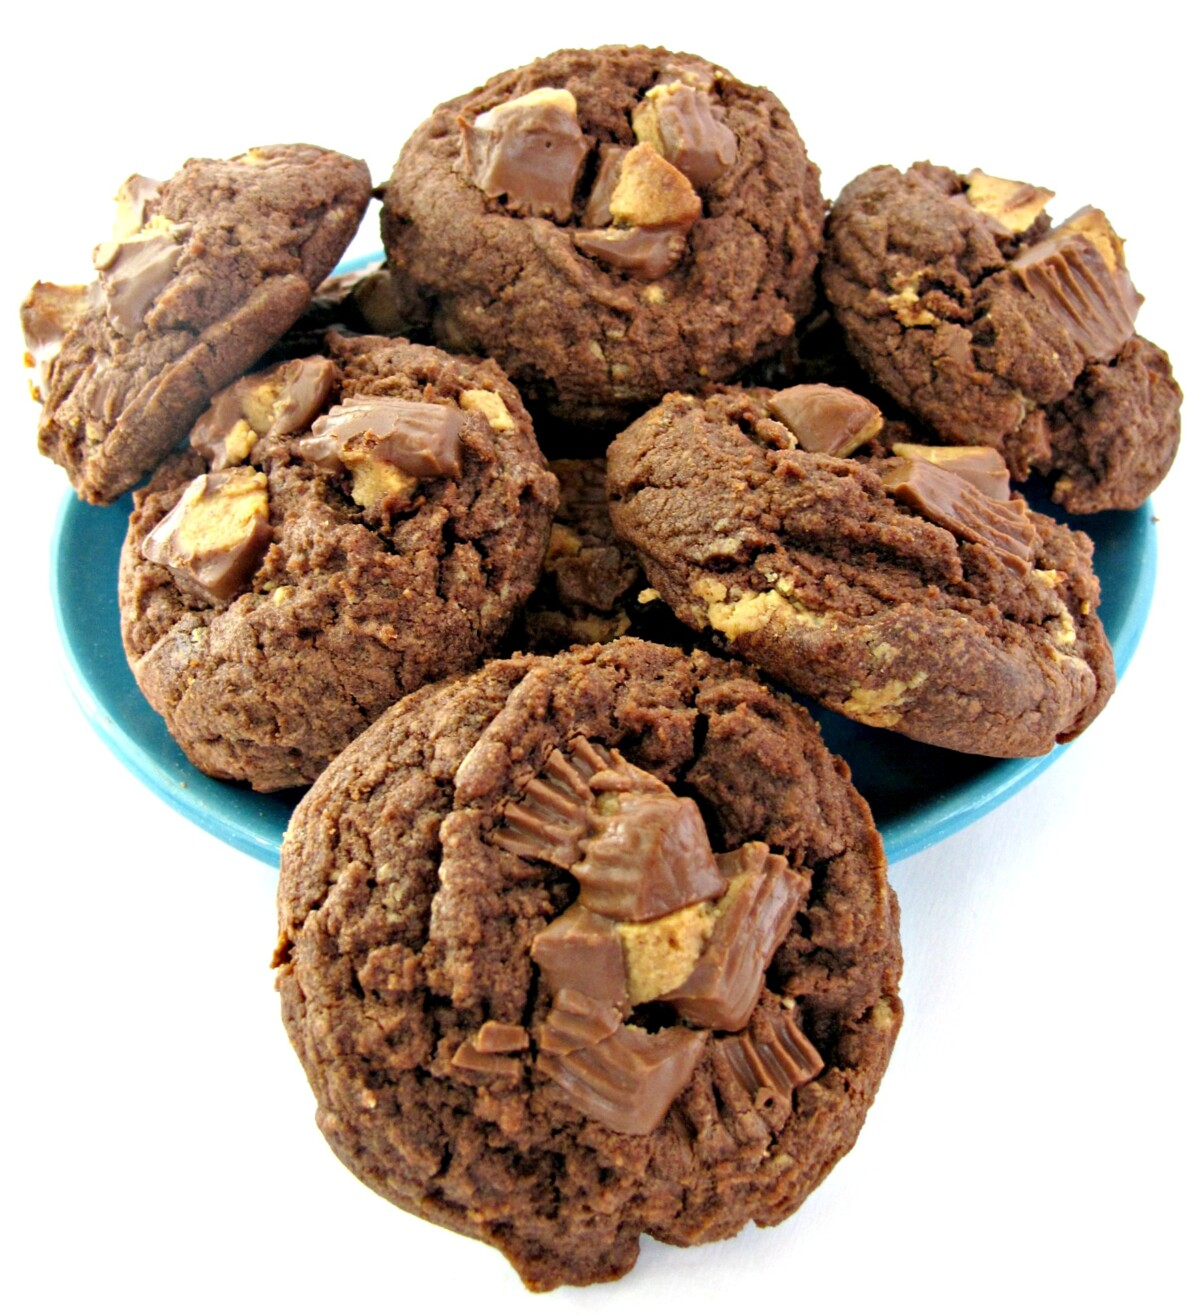 Thick, chocolate cookies with chunks of peanut butter cups on top on a blue plate.